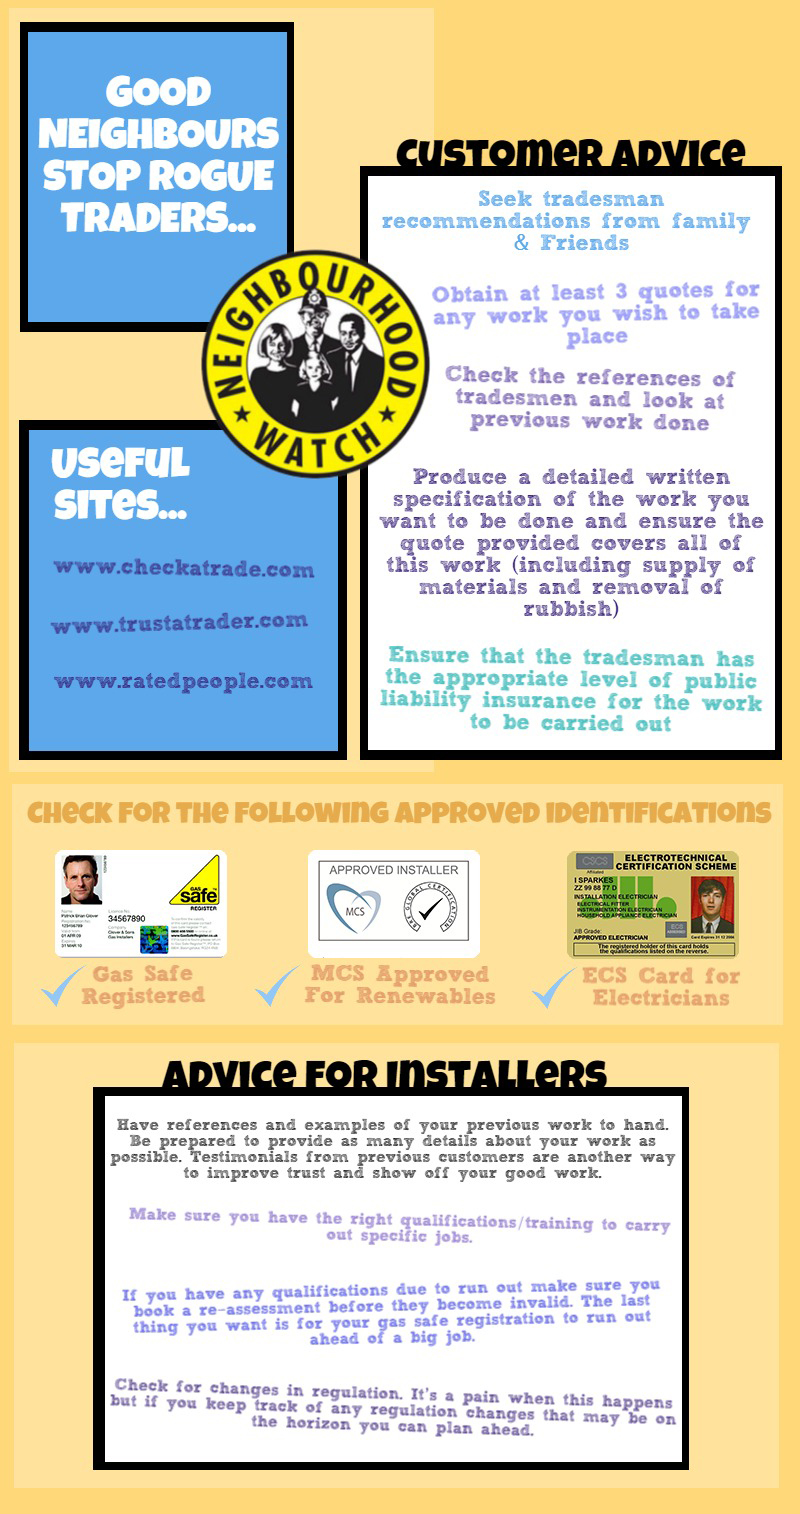 stop rogue traders infographic